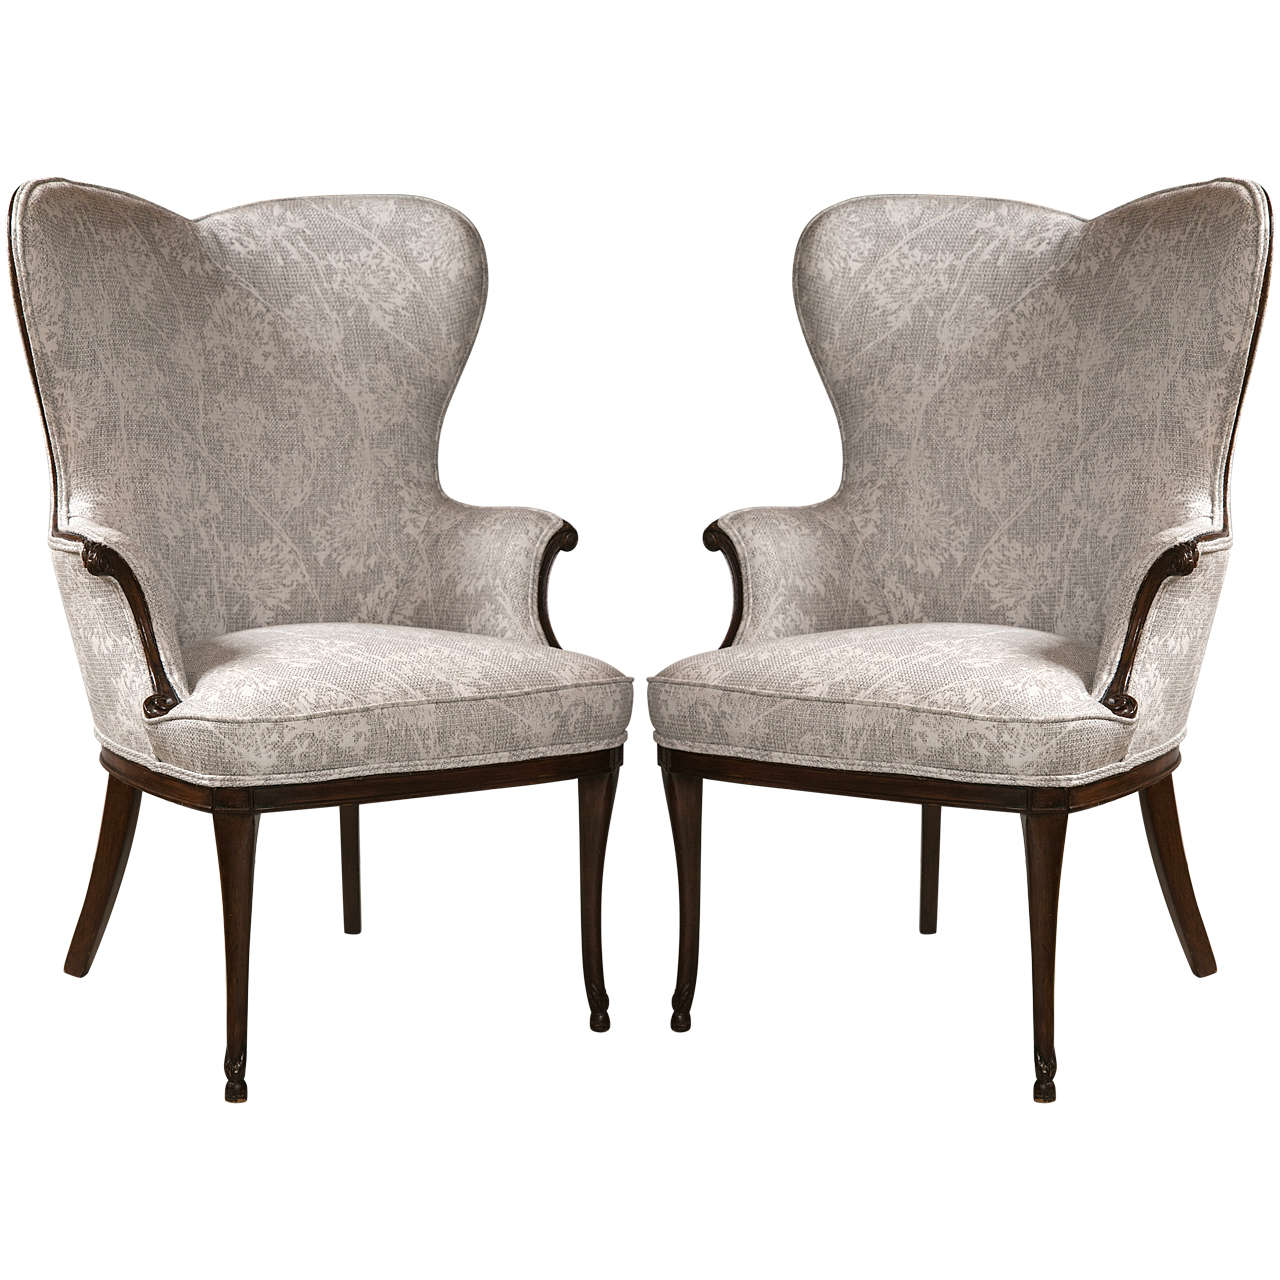 Shaped Chairs: Pair Of French Heart Shaped Wing Chairs In Mahogany Legs